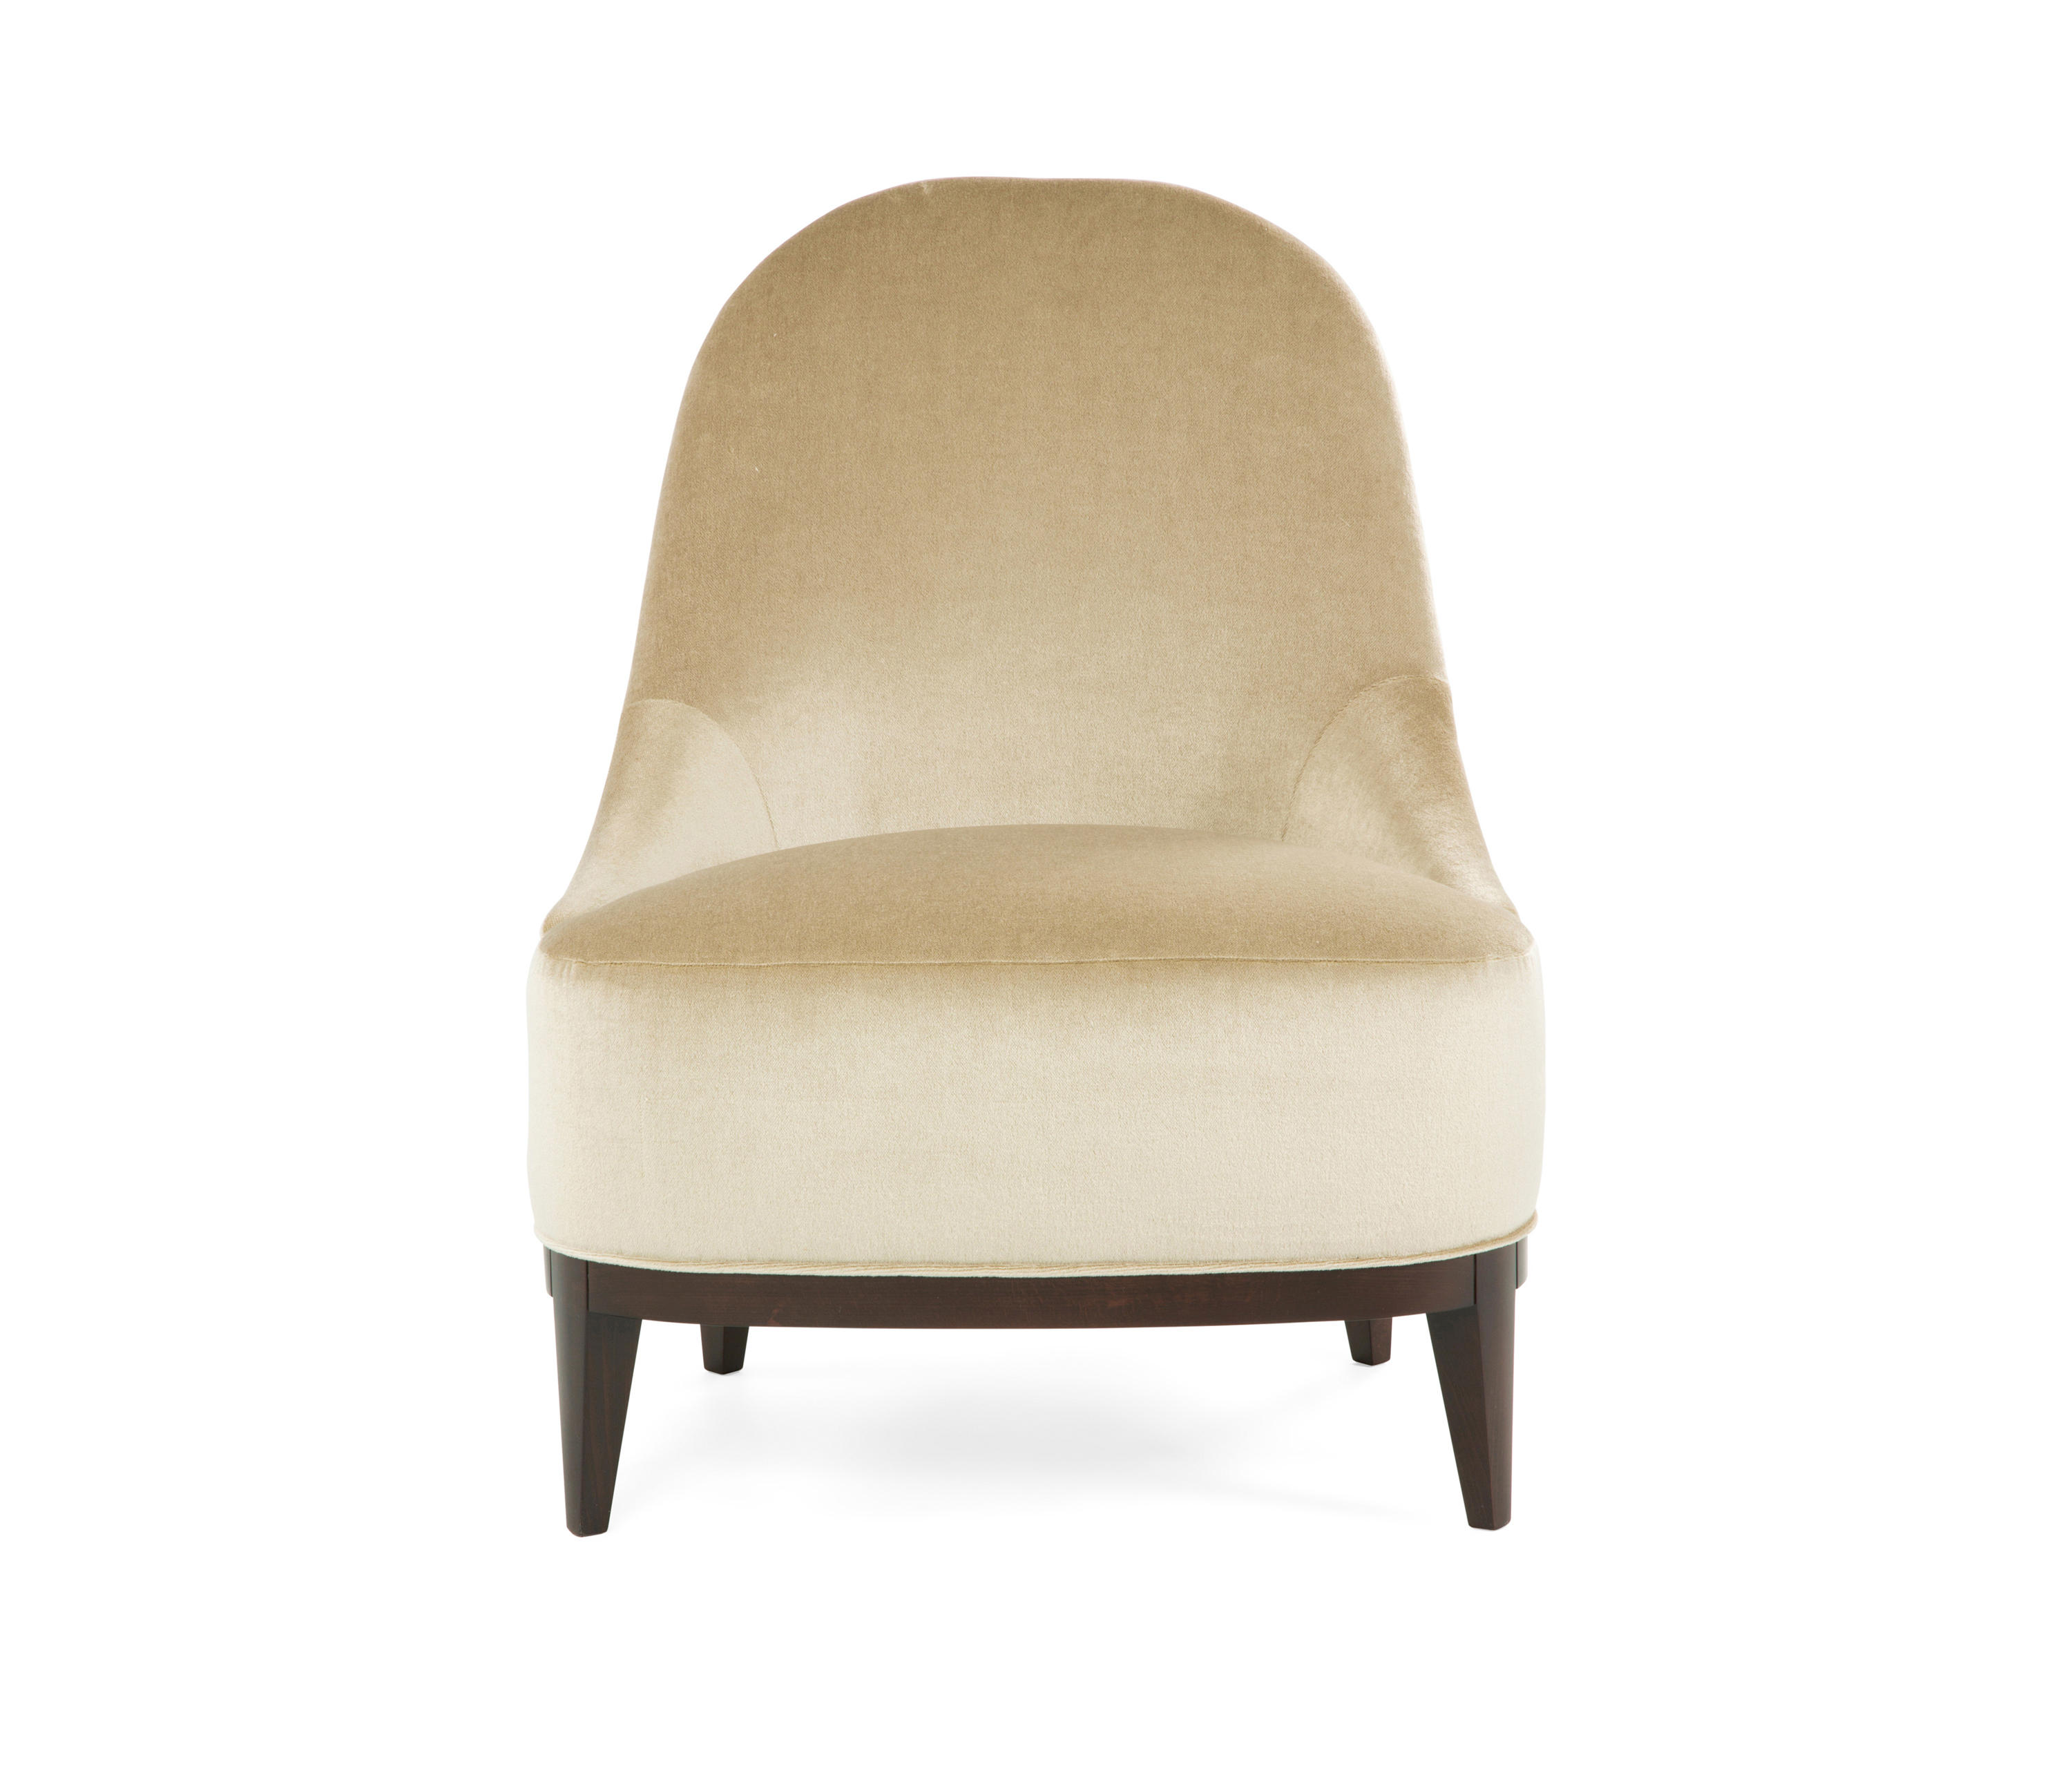 ... Stanley Occasional Chair By The Sofa U0026 Chair Company Ltd | Lounge Chairs  ...